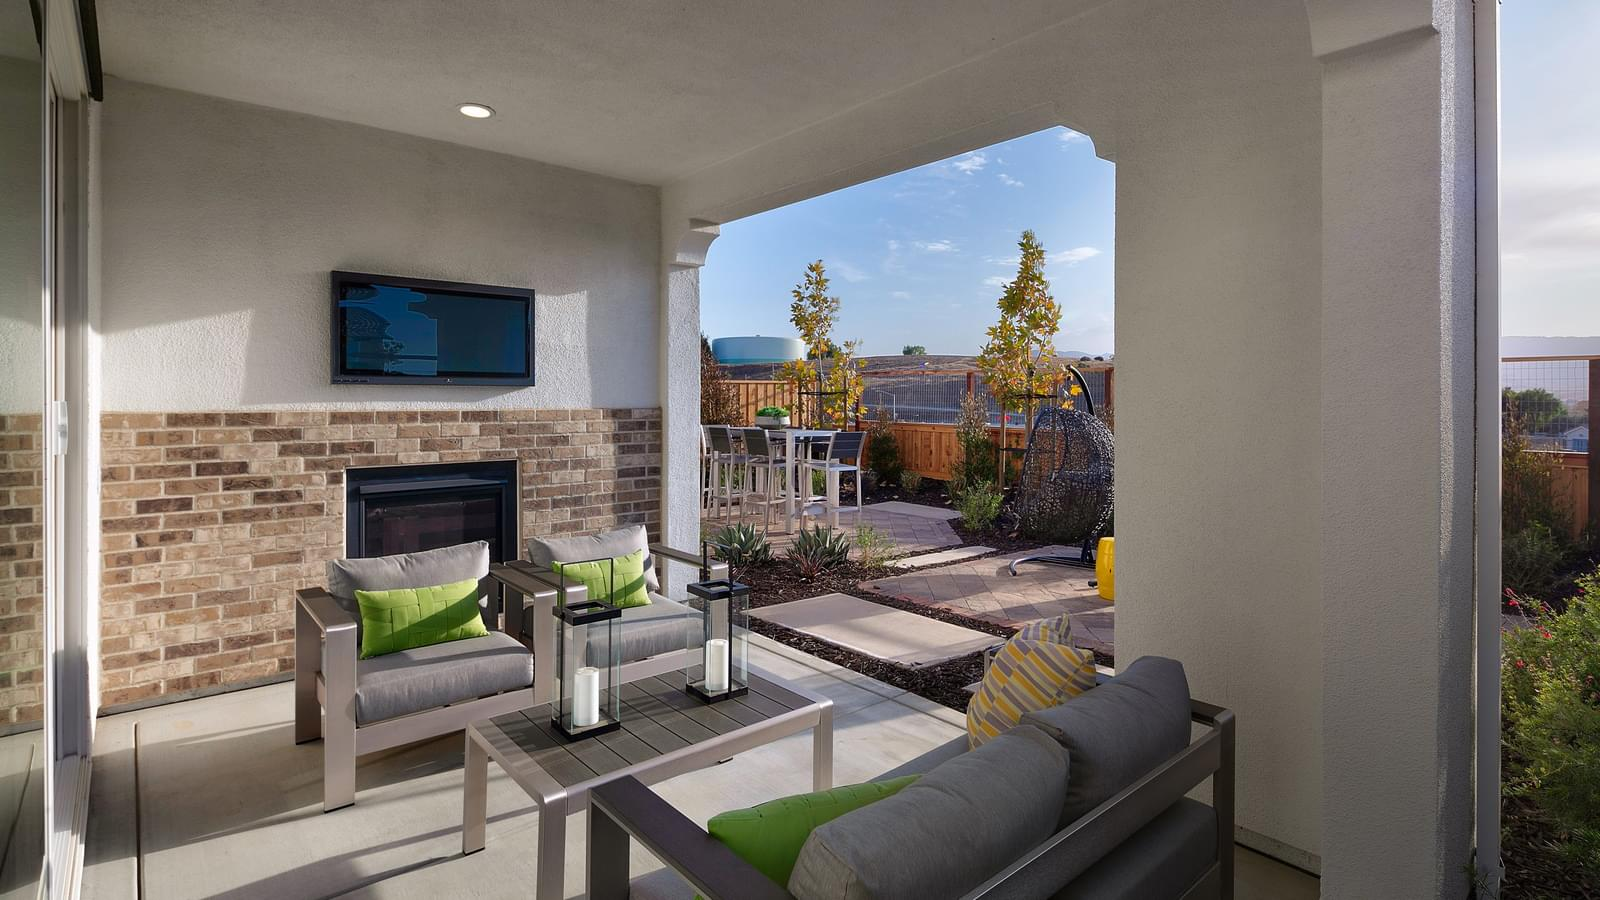 Optional Covered Patio with Fireplace